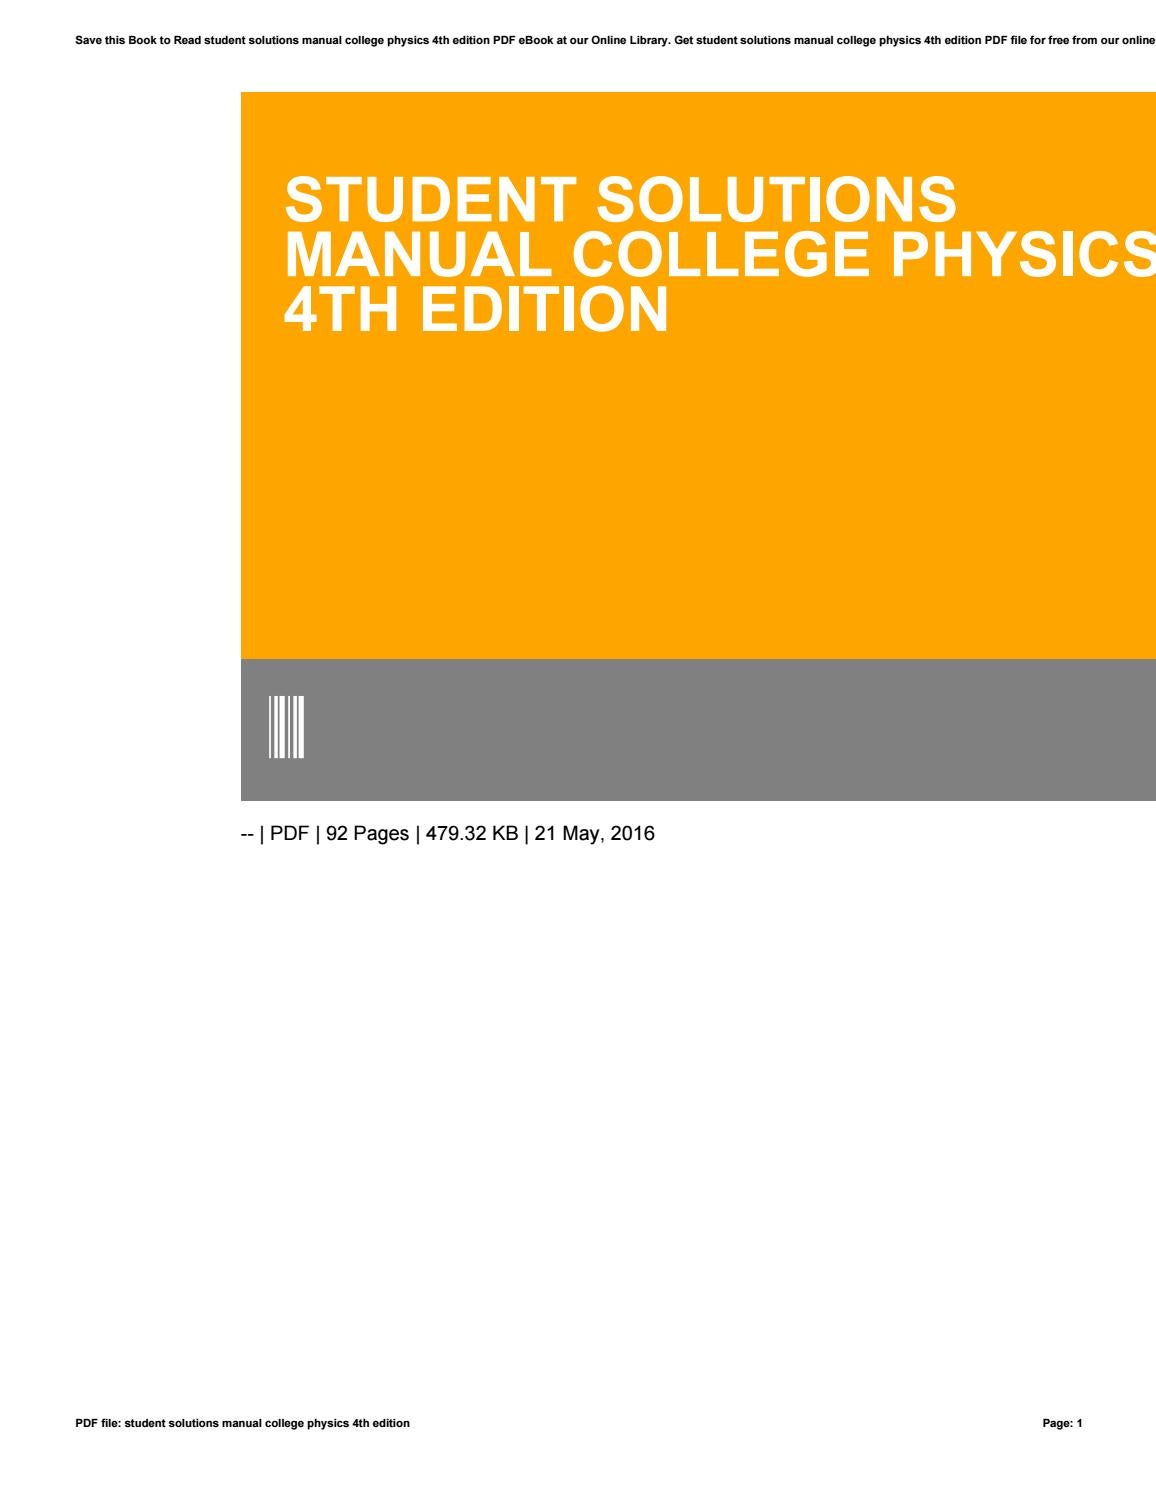 Student solutions manual college physics 4th edition by elie31taman - issuu